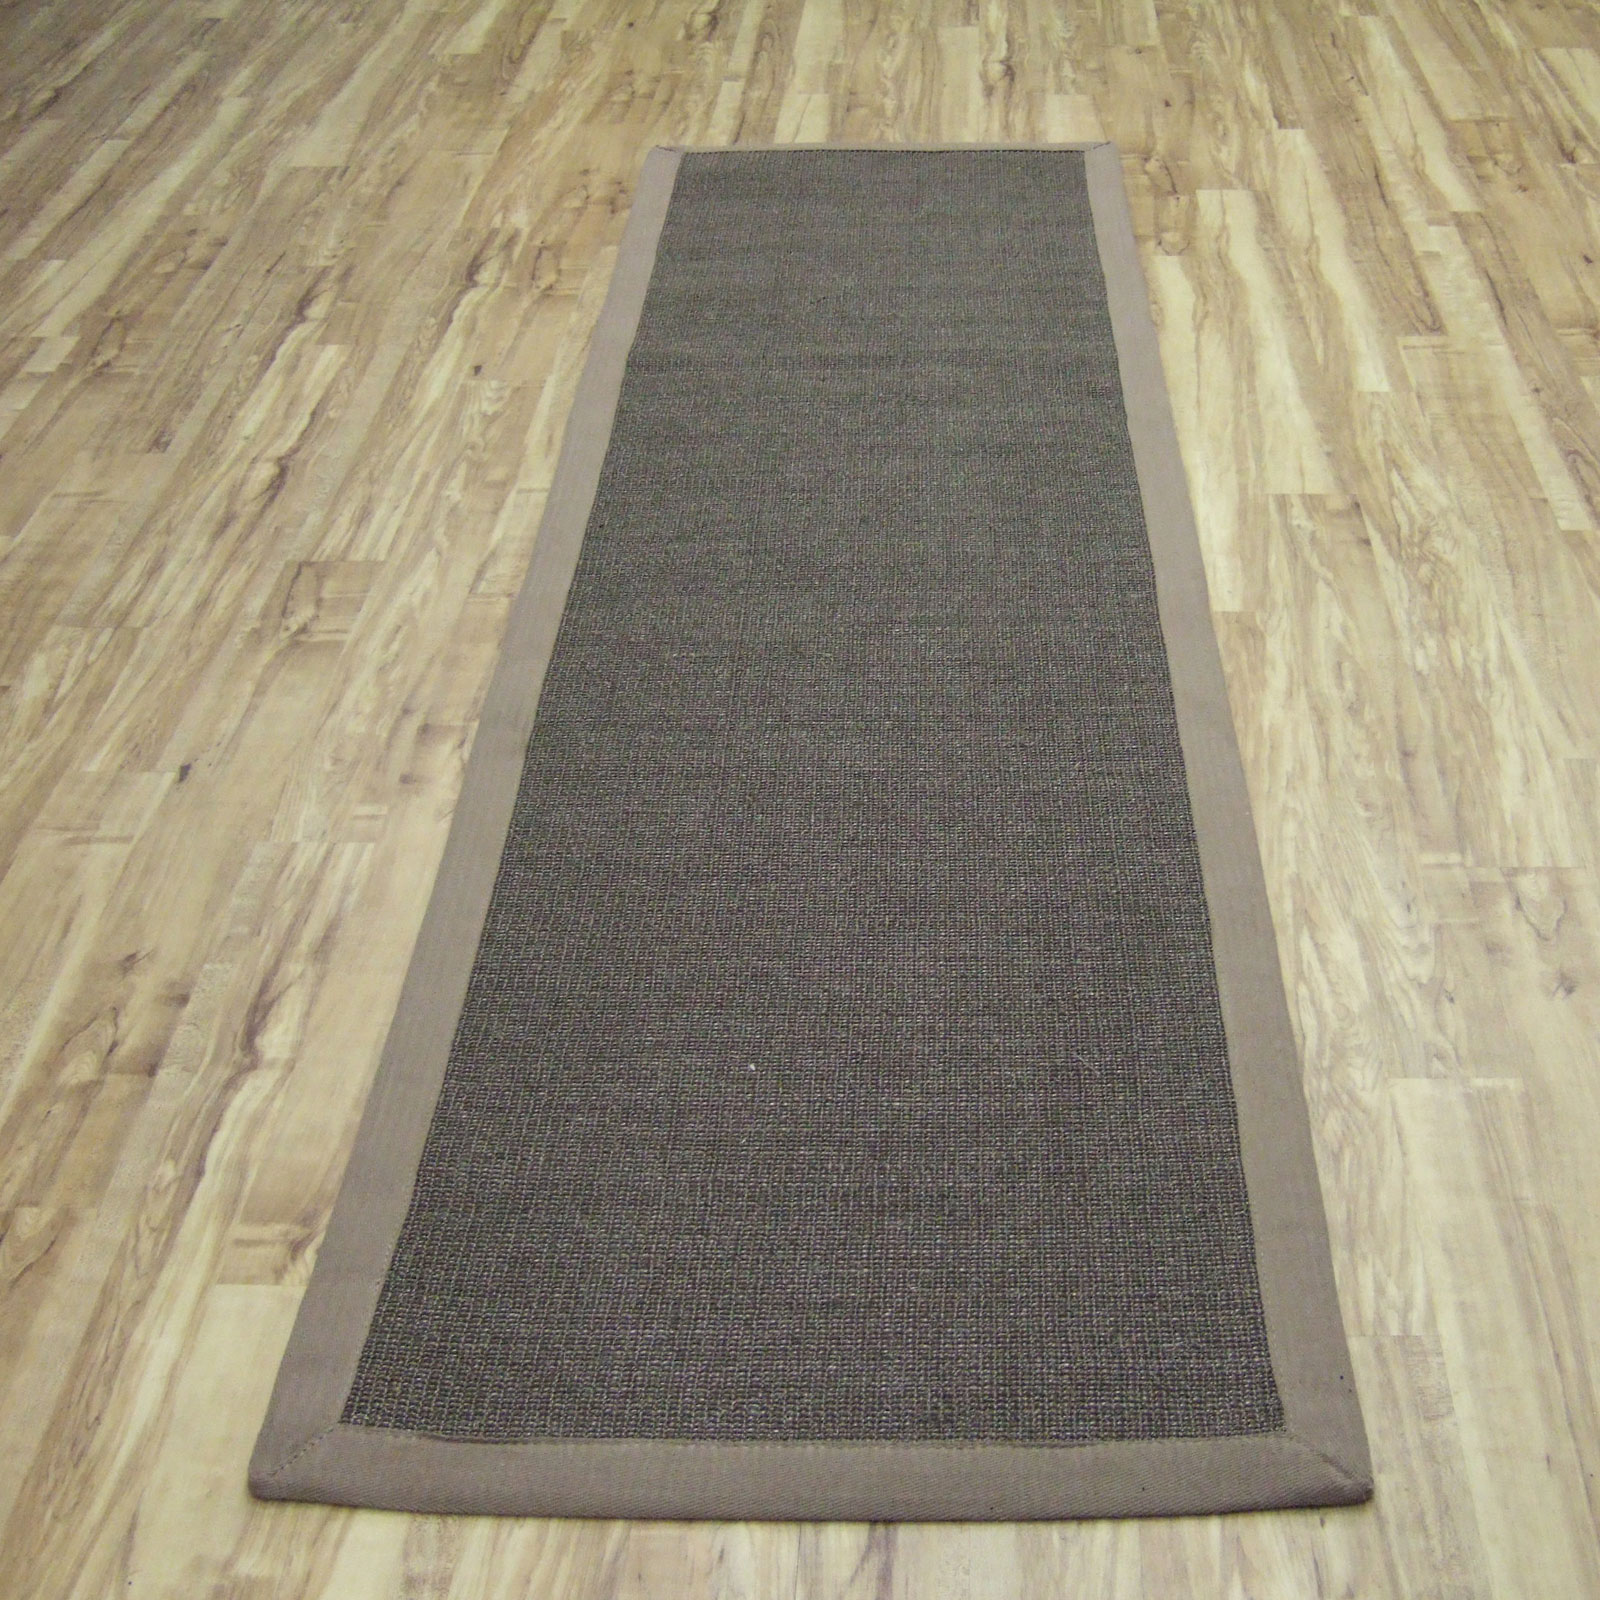 Runner Rugs Uk: Sisal Hallway Runners In Mocha With A Taupe Border